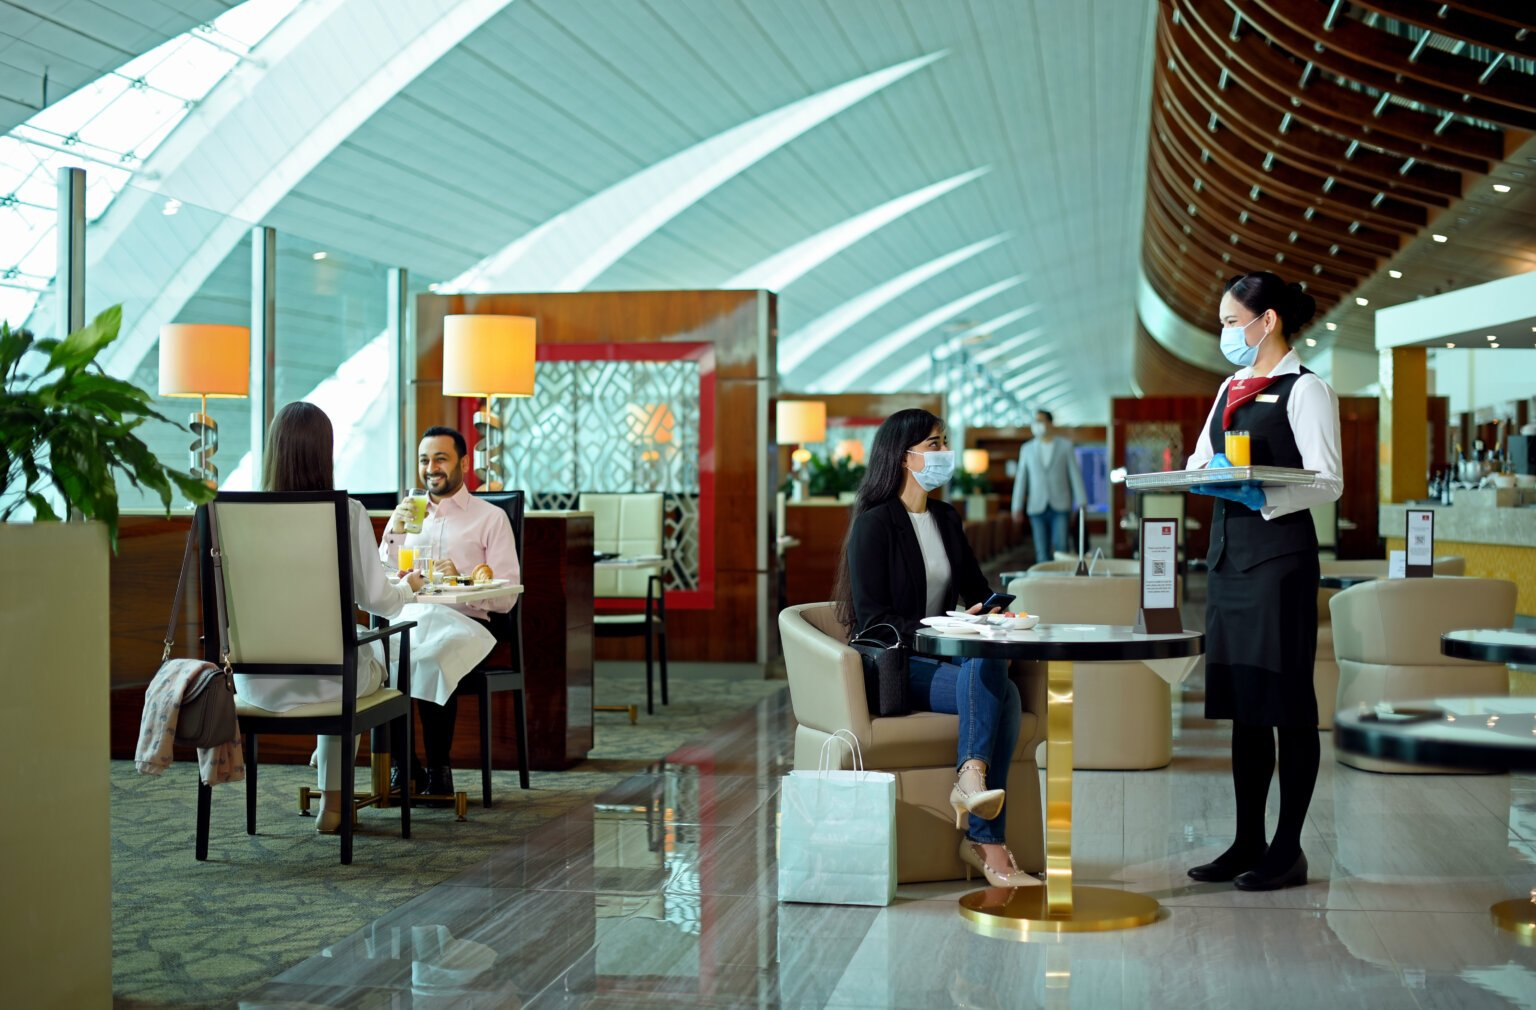 Emirates re-opens worldwide lounges beginning with Cairo